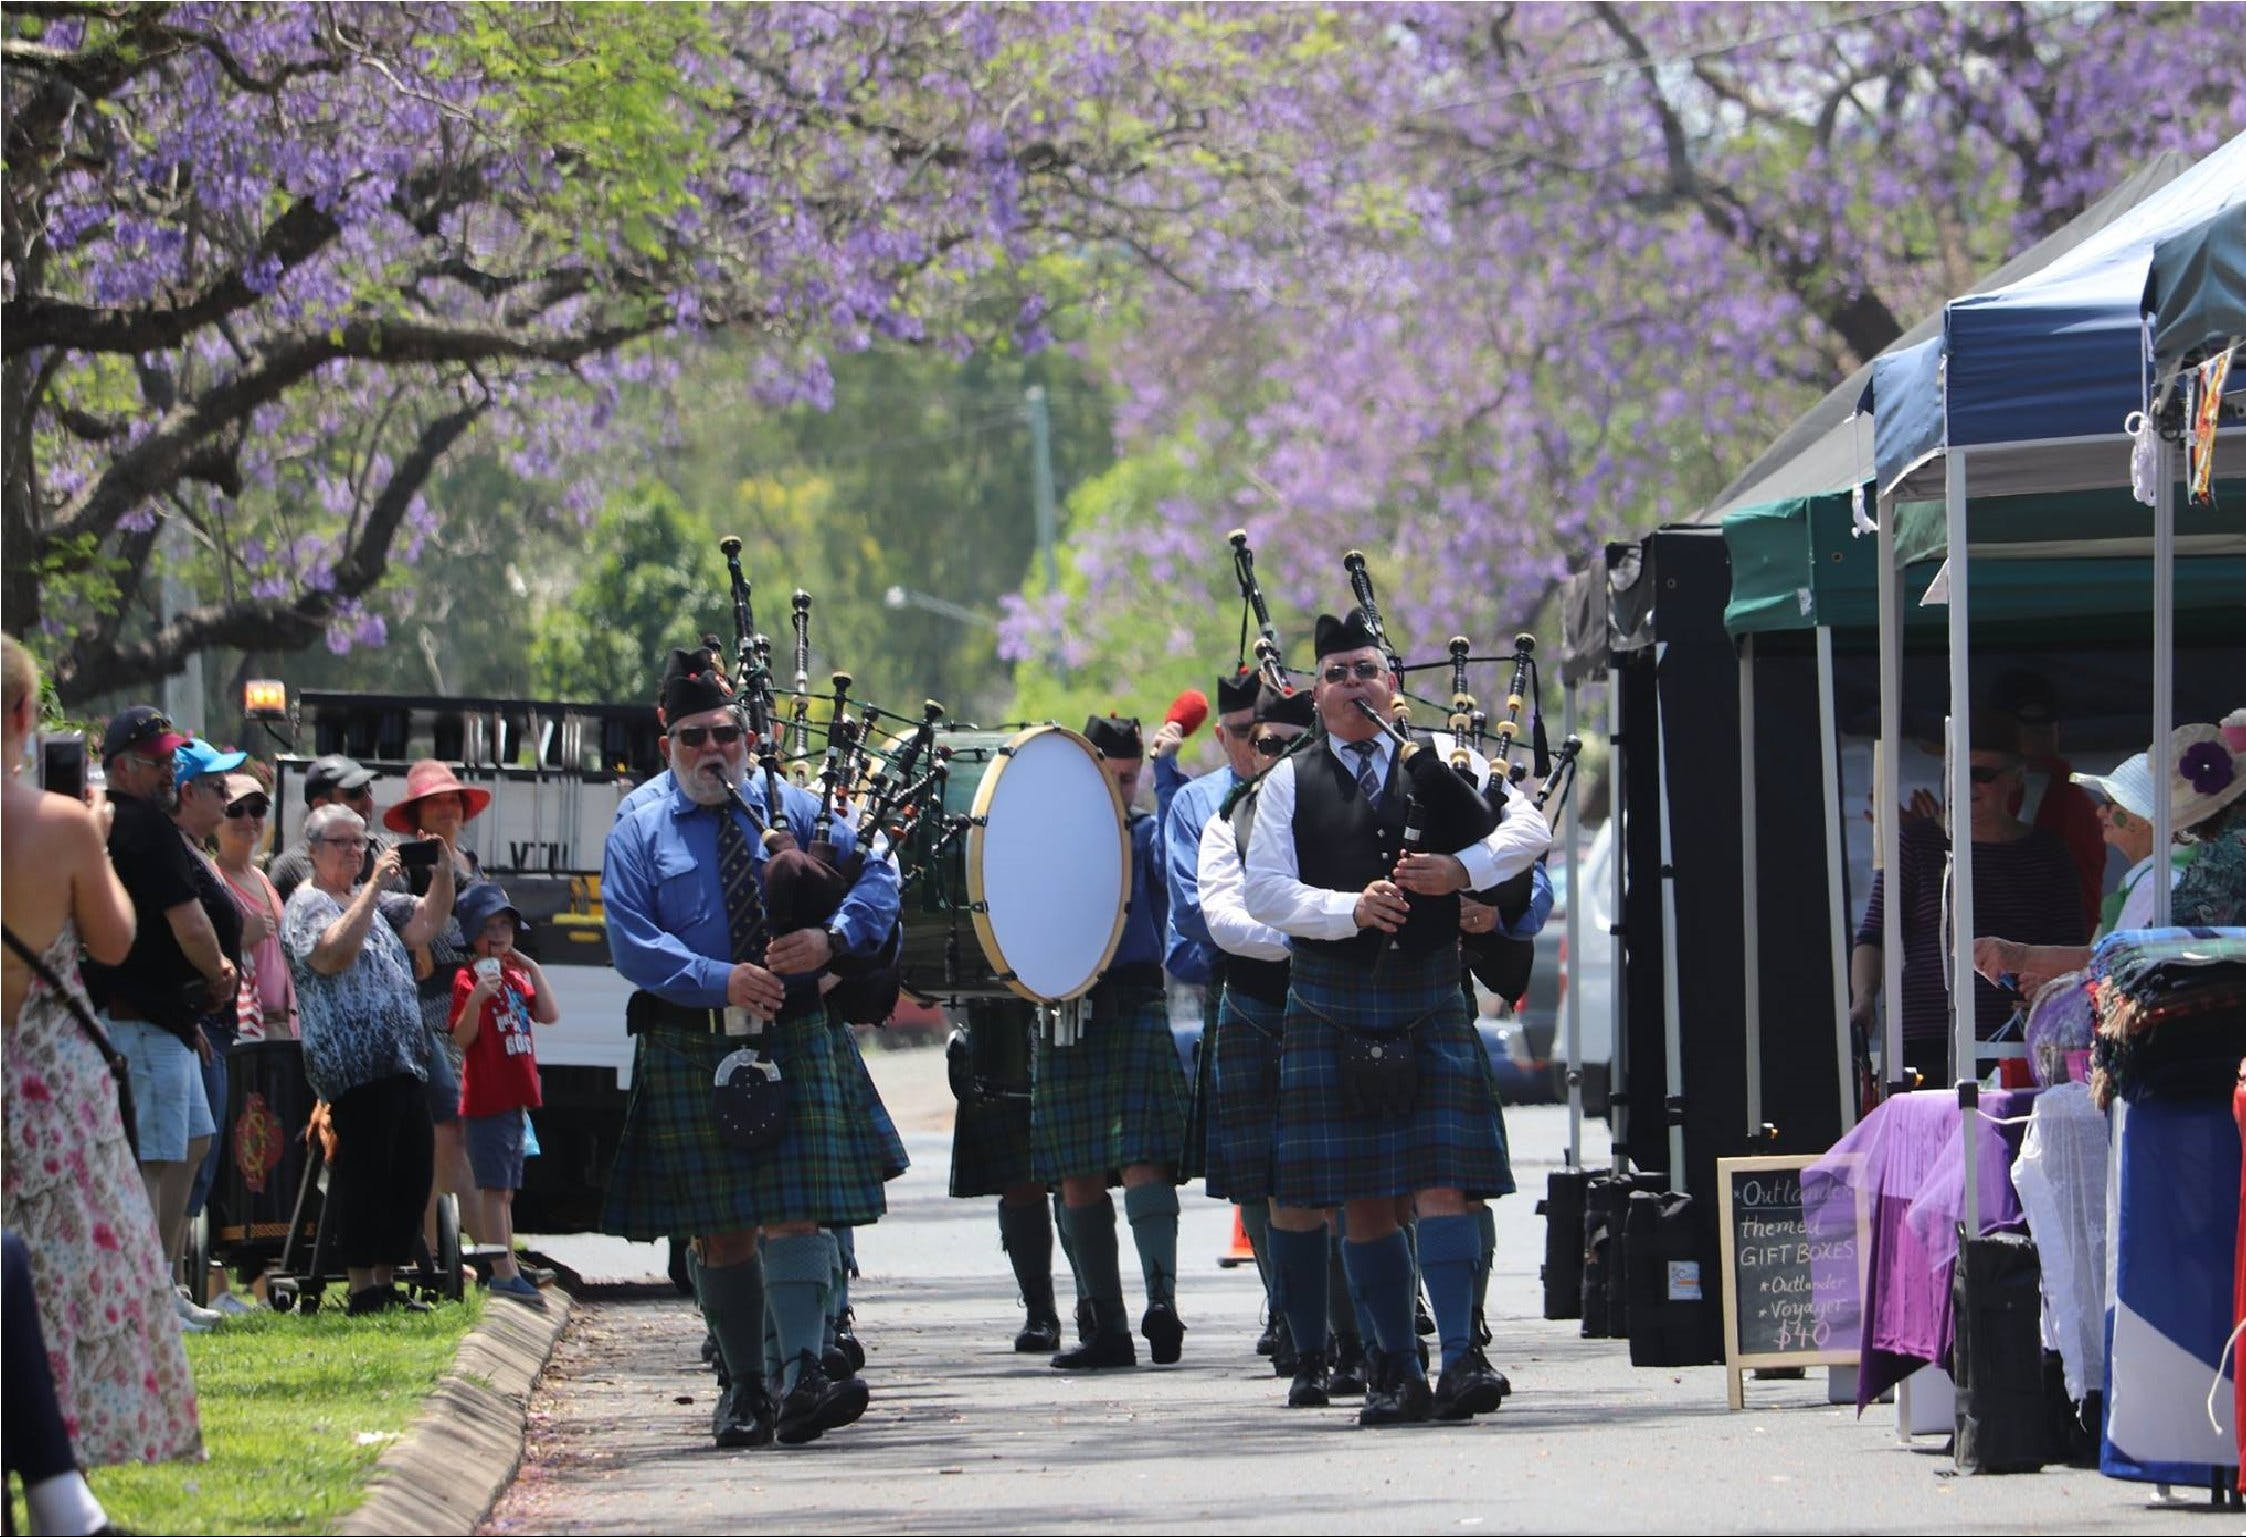 Celtic Festival of Queensland - Casino Accommodation